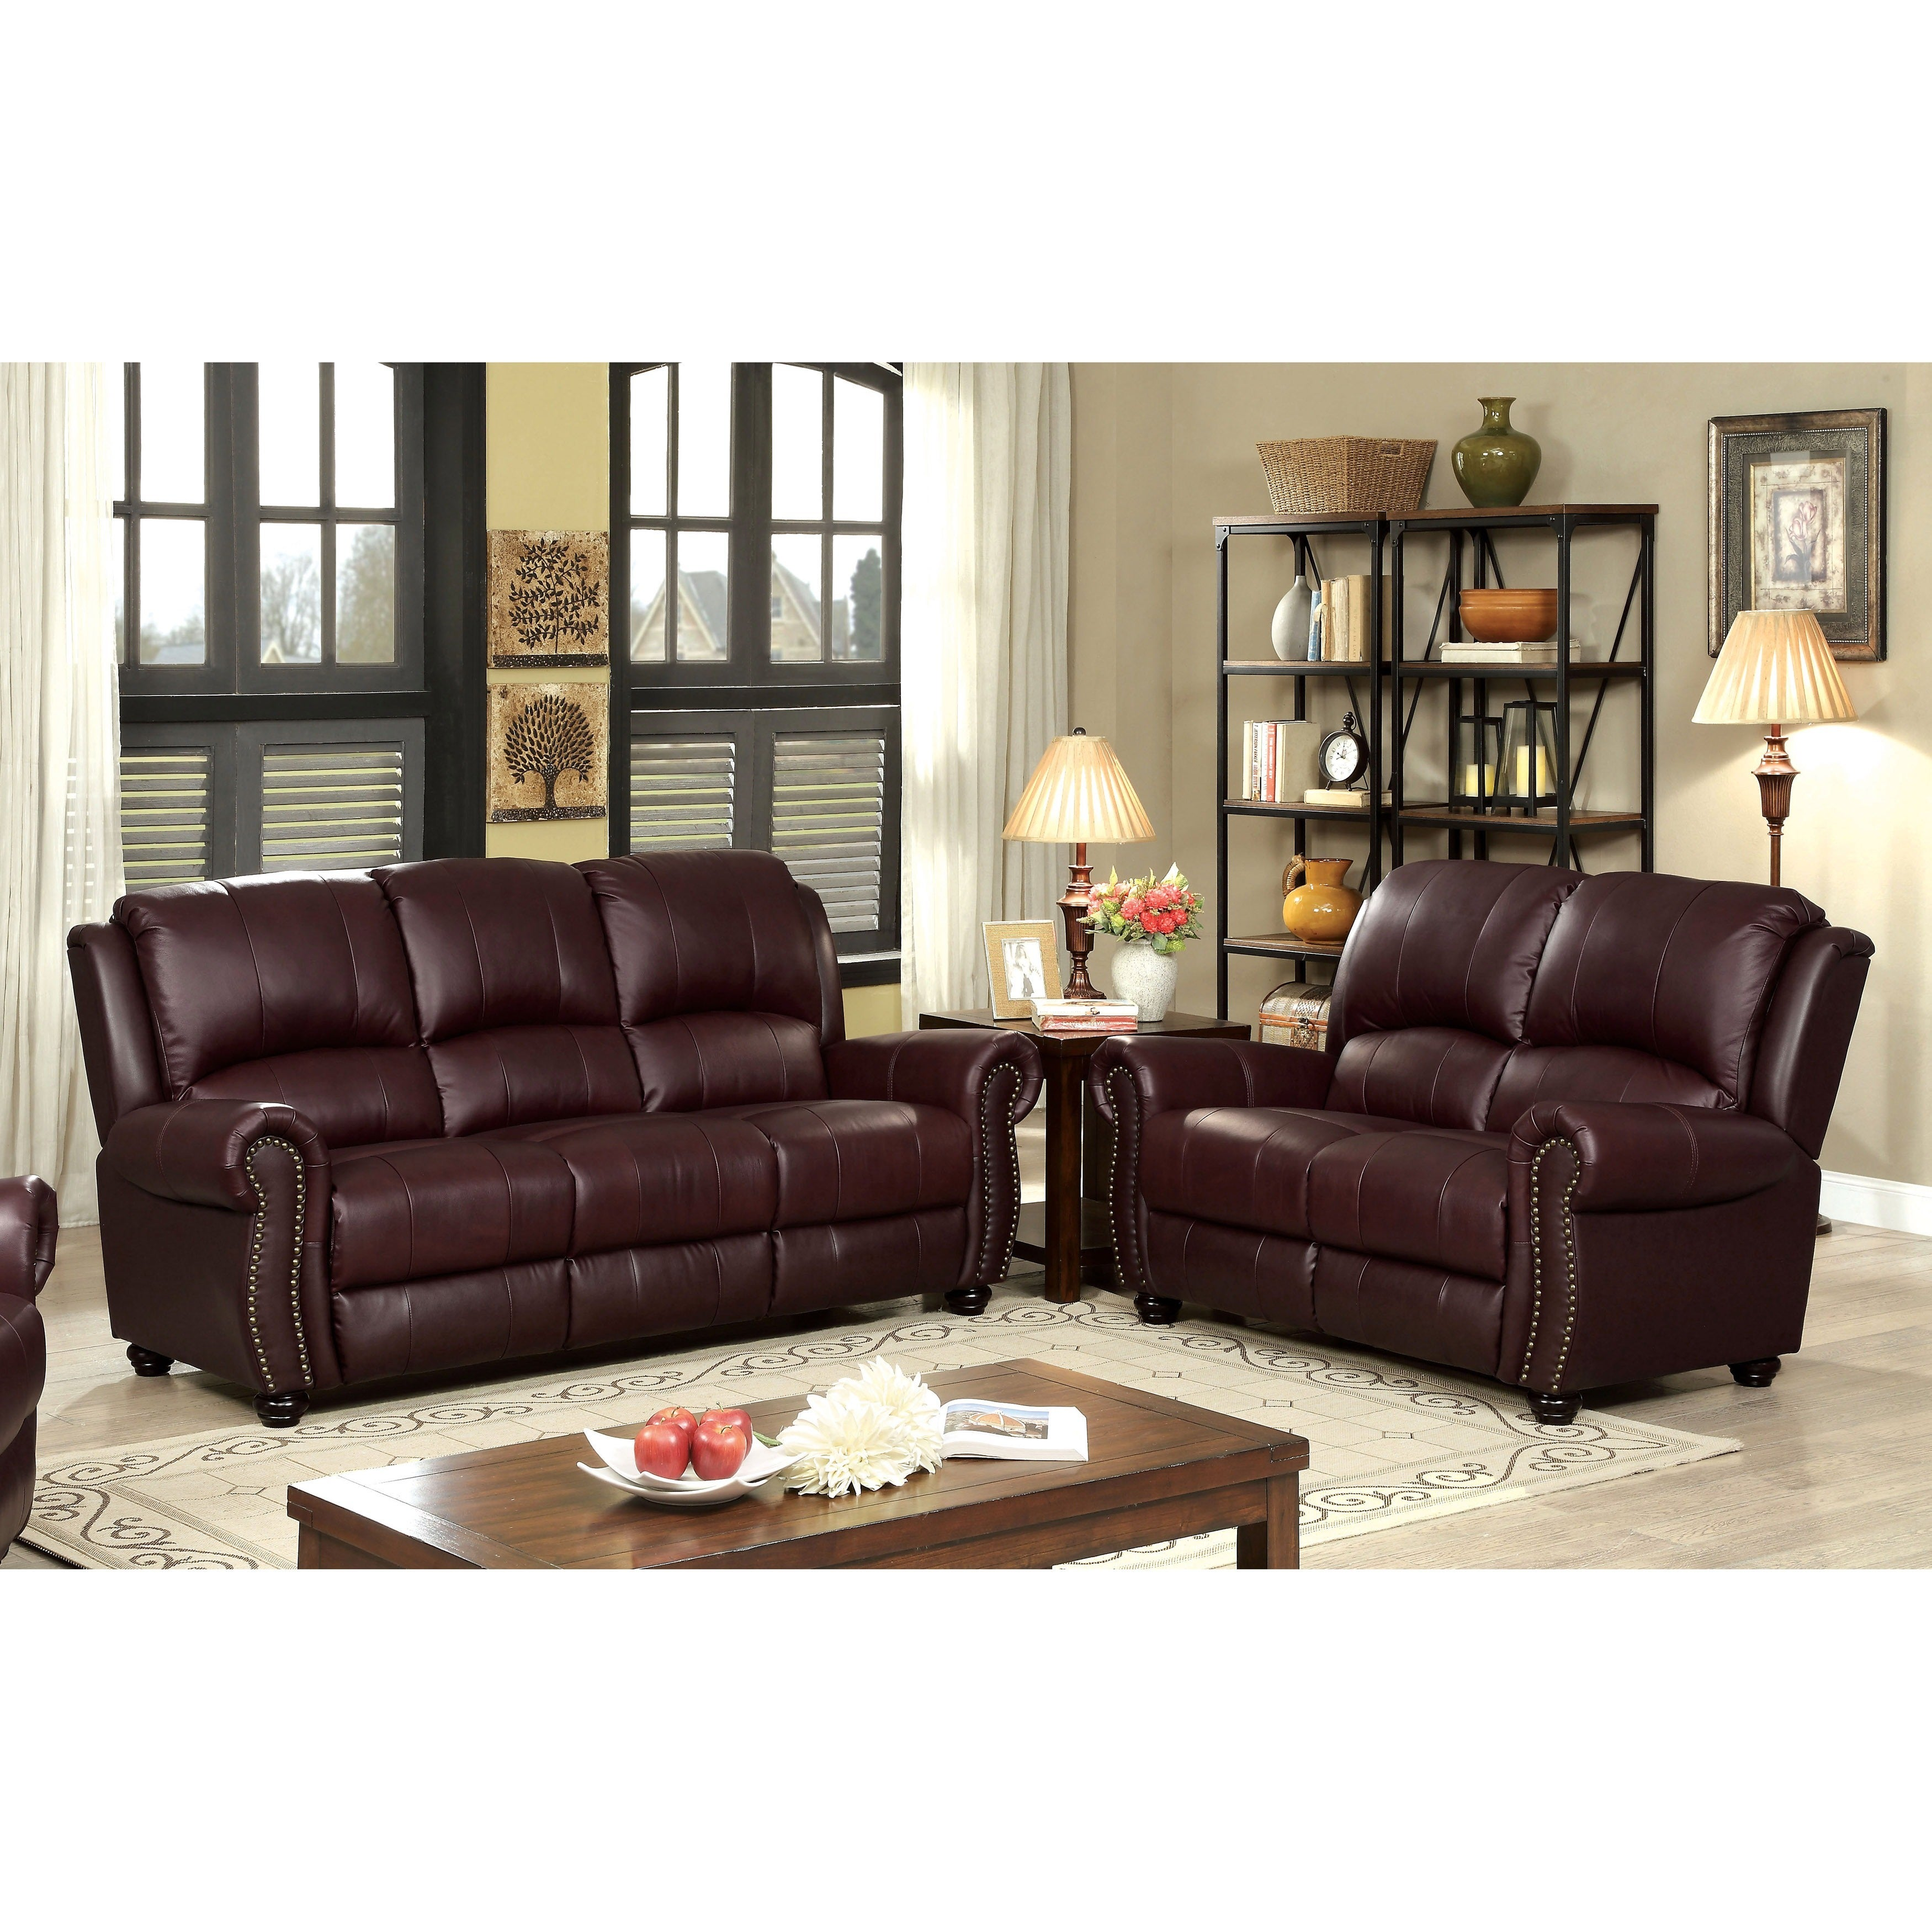 Furniture Of America Curtis Transitional 2 Piece Top Grain Leather Match  Sofa Set (Option